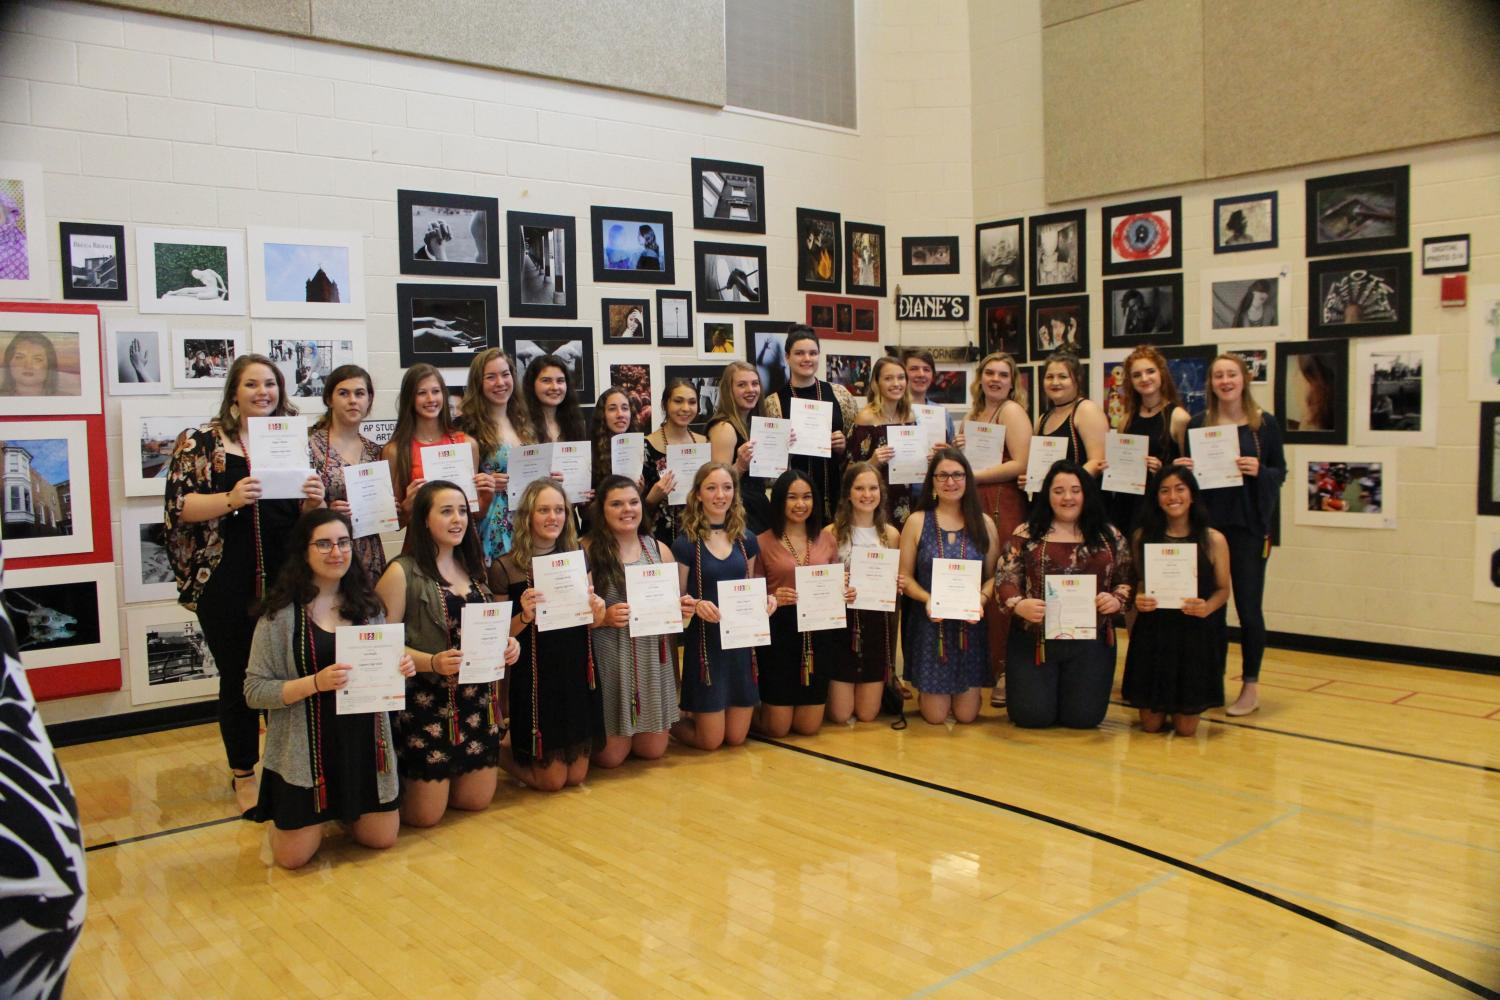 Members+of+NAHS+celebrate+their+successful+art+show.